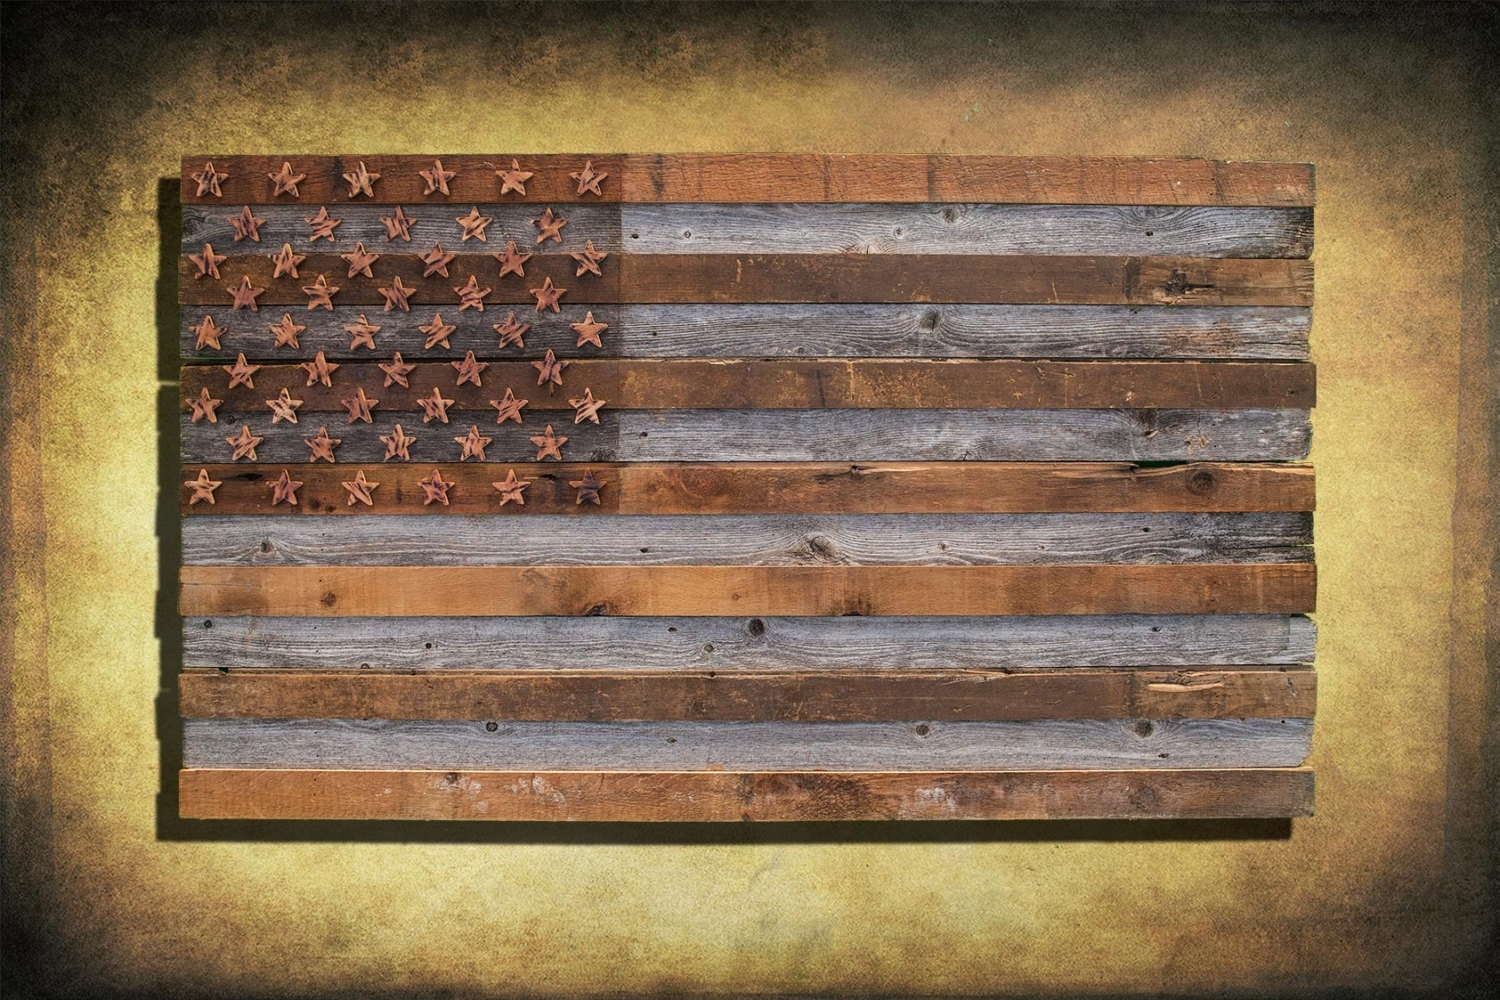 Barnwood American Flag, 100 Year Old Wood, One Of A Kind, 3d, Wooden Within Most Recent Wooden American Flag Wall Art (View 7 of 20)